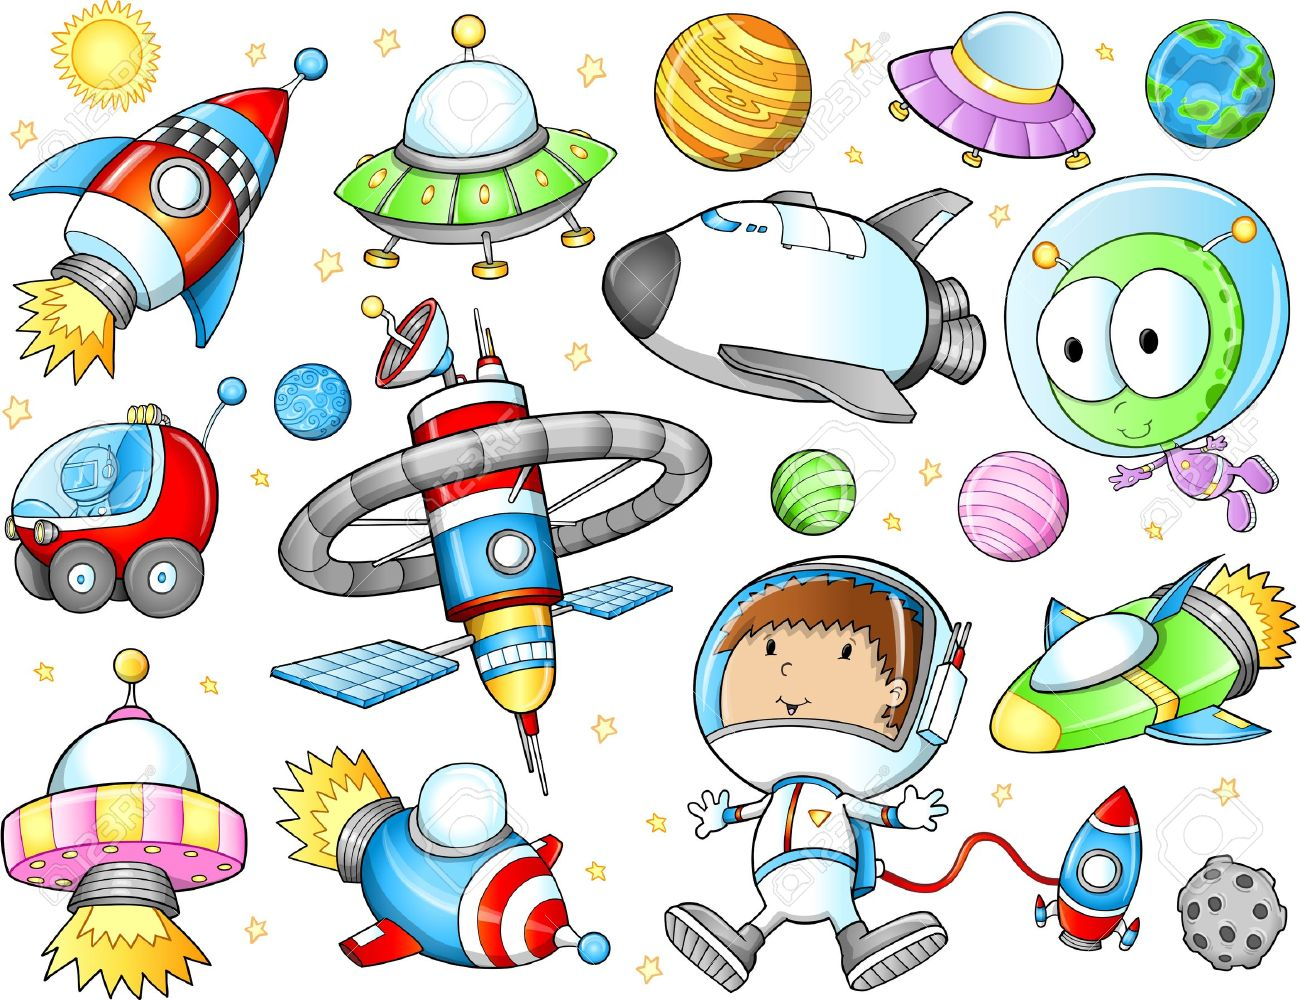 Cute Outer Space Spaceships and Astronaut Vector Set - 14968955